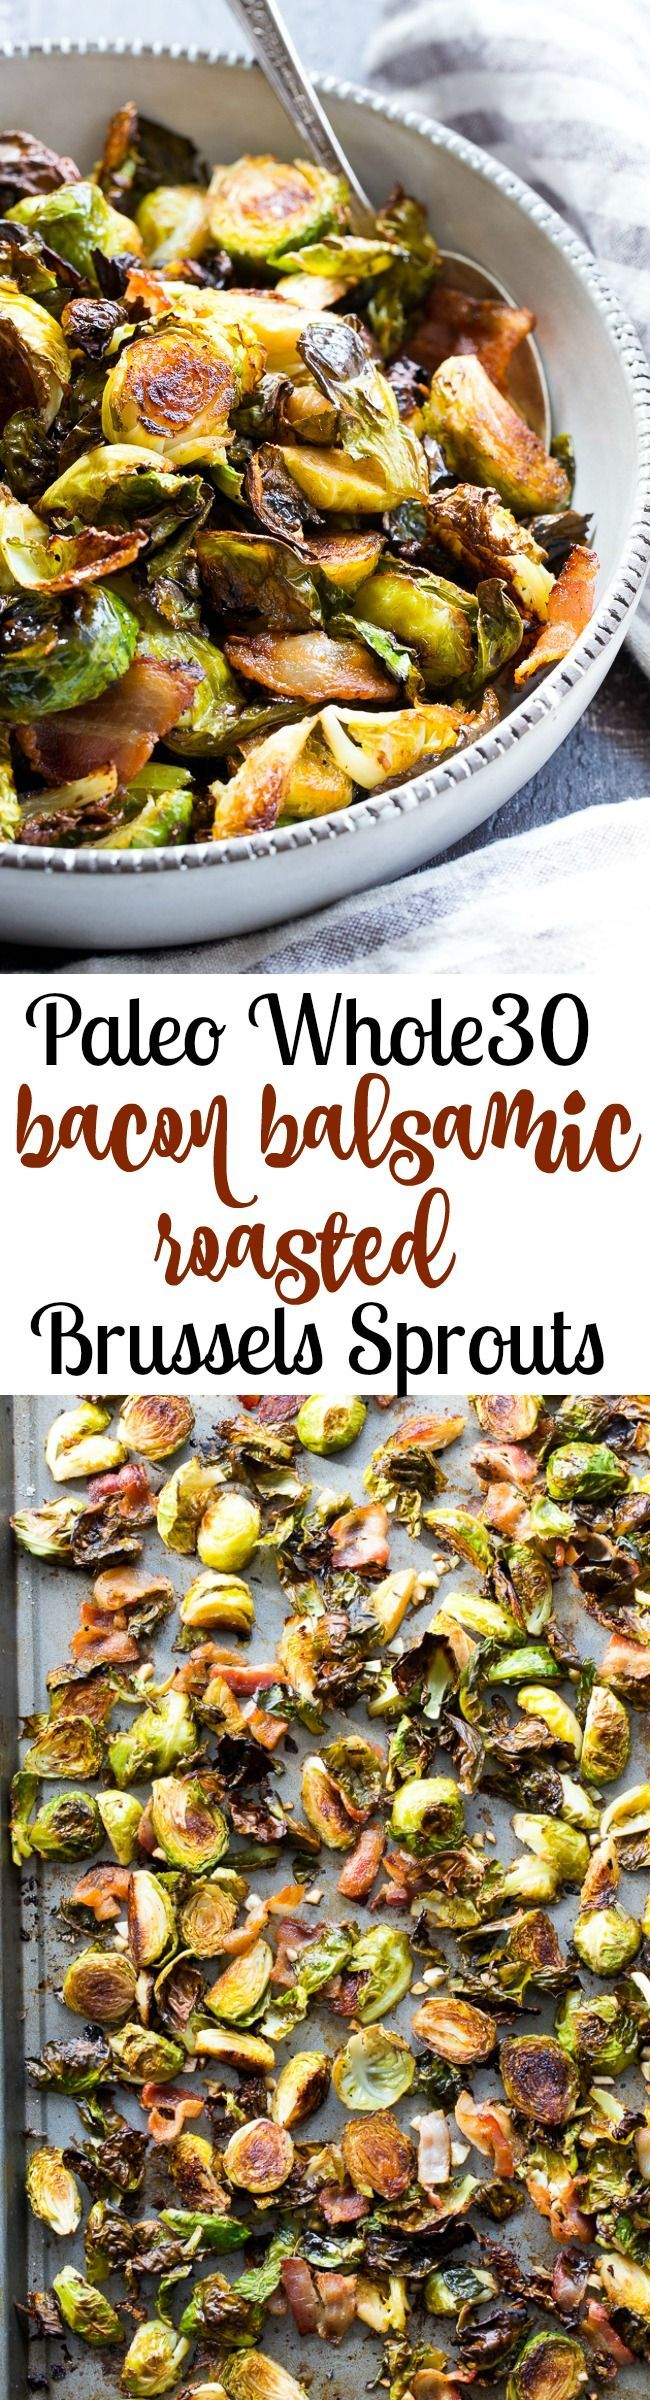 These crispy bacon, garlic and balsamic roasted brussels sprouts are packed with flavor and make the perfect side dish for anytime!  Whole30 and paleo friendly, plus kid approved!